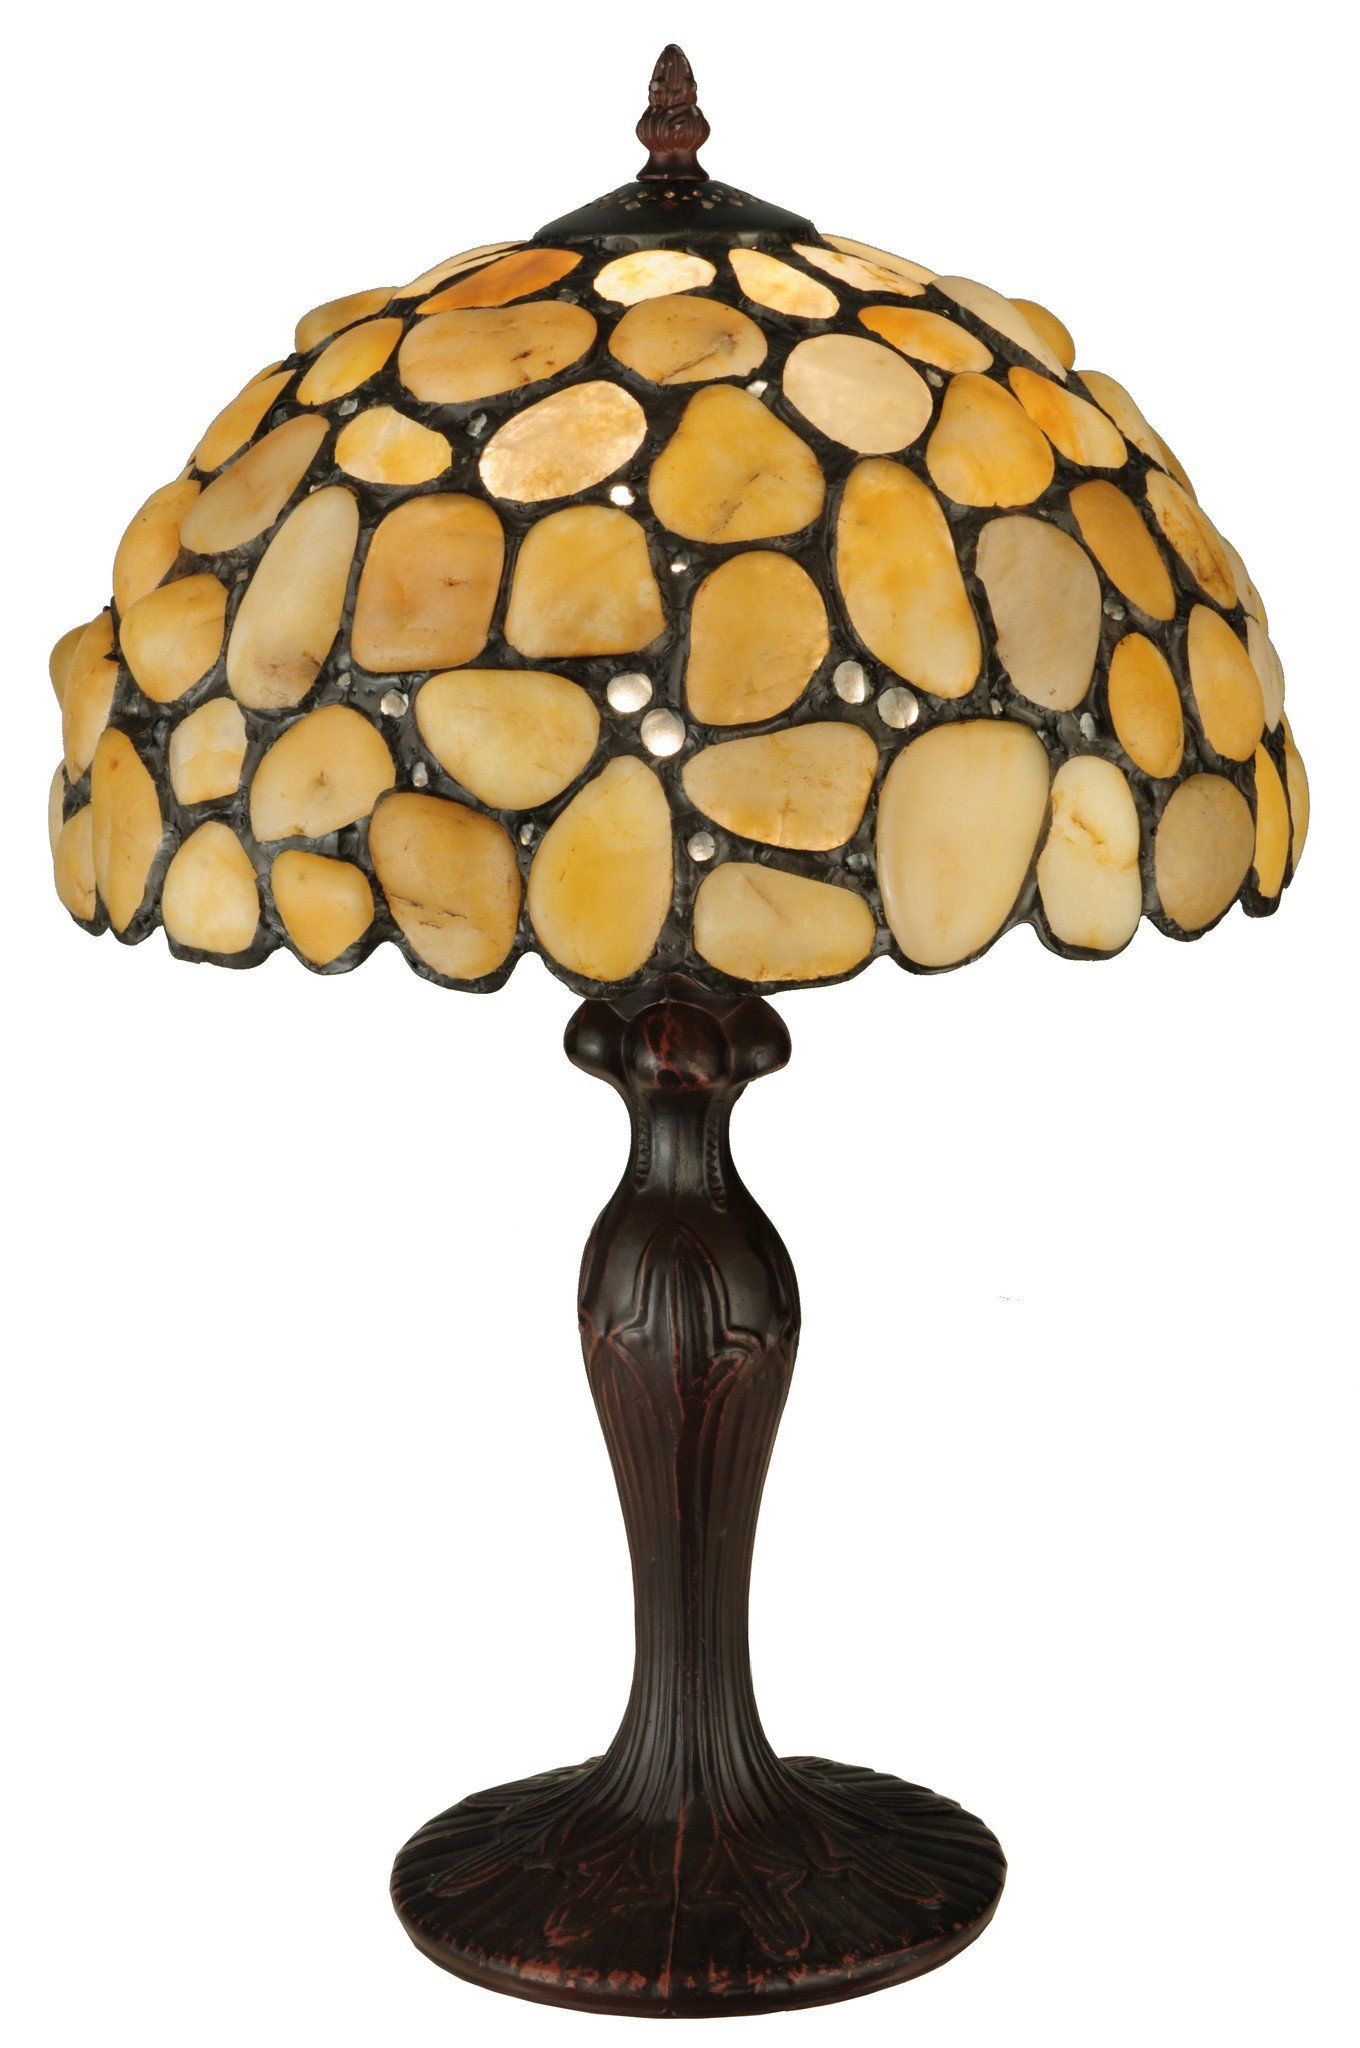 Meyda Tiffany 138123 1 Light 19.5'' Tall Hand-Crafted Table Lamp with Stained Gla, Mahogany Bronze by Meyda Tiffany